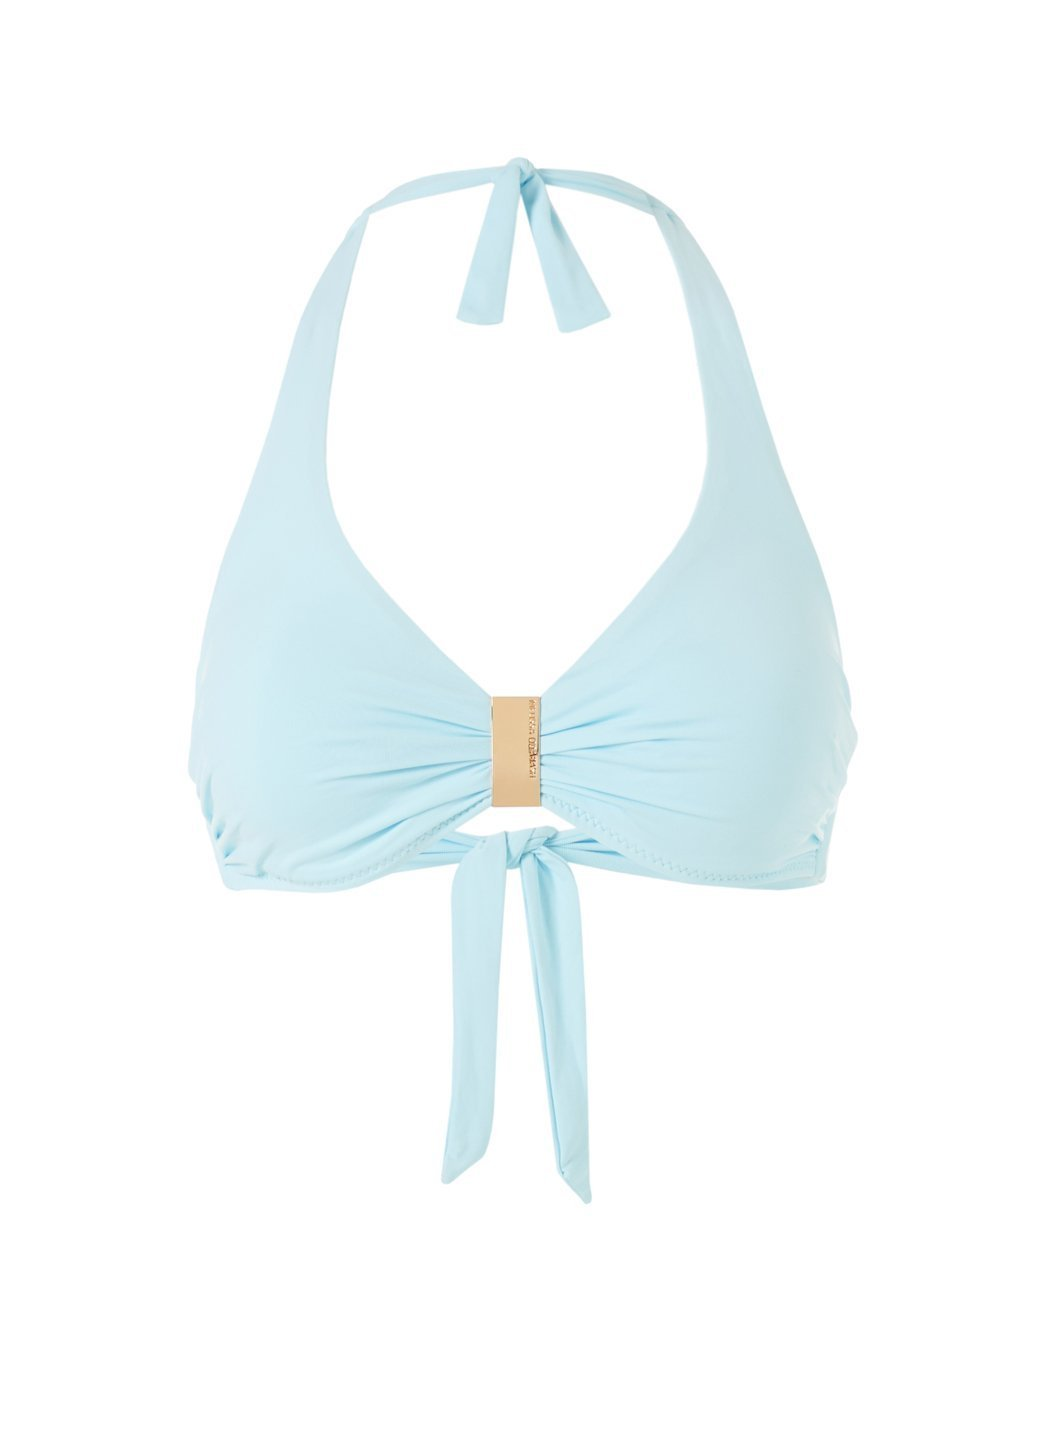 provence-celeste-bikini-top - Cut-Out